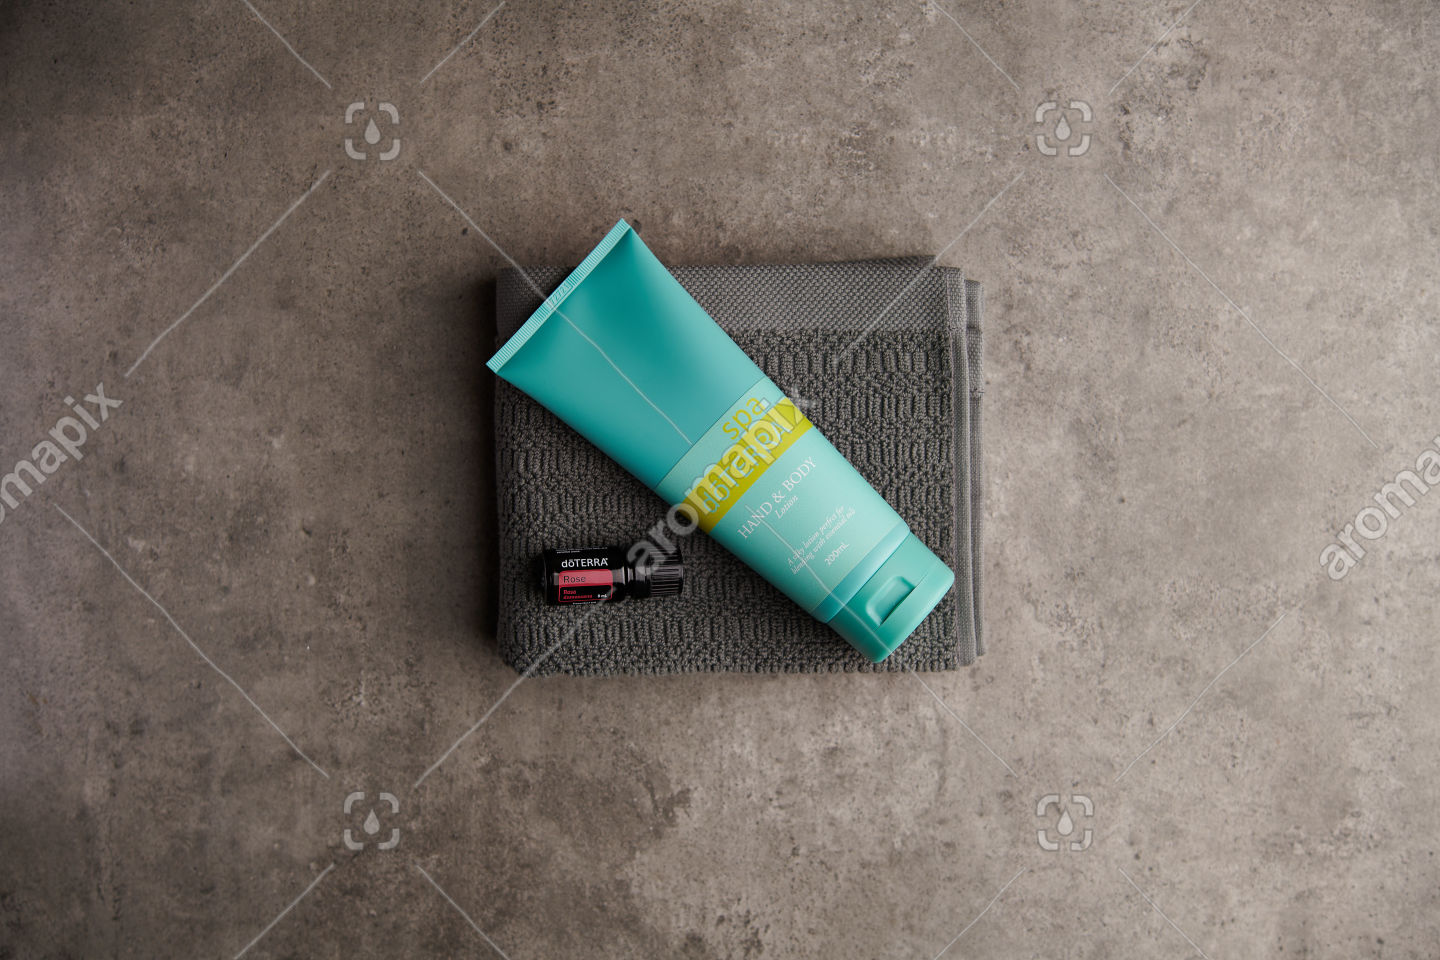 doTERRA Spa Hand and Body Lotion and Rose essential oil on stone